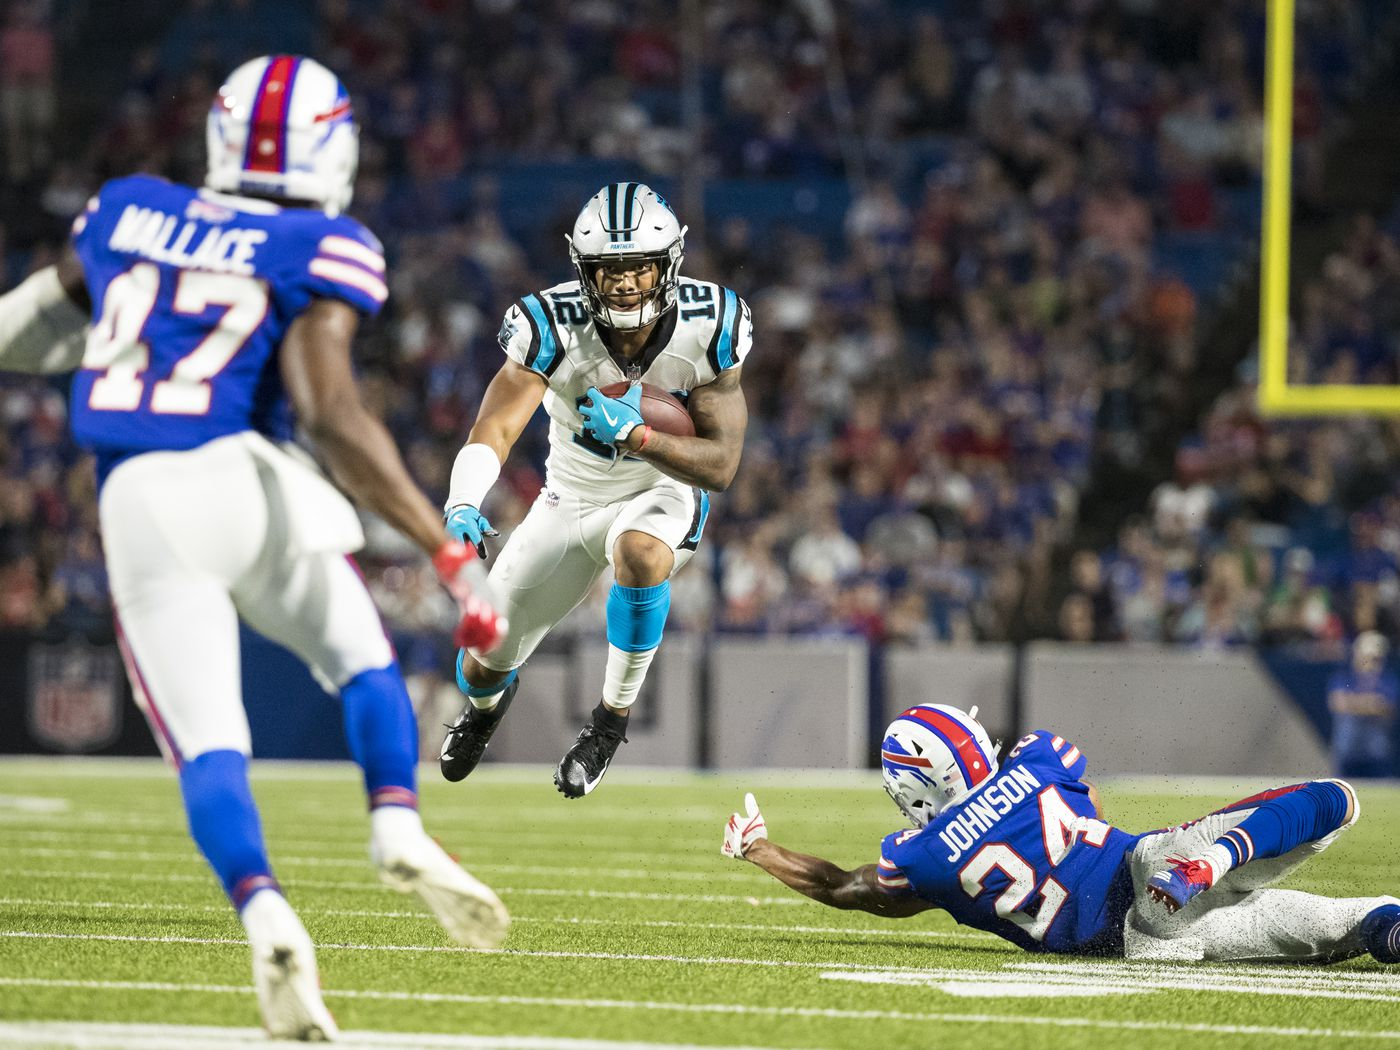 a5d987710 Carolina Panthers WR D.J. Moore wins his first (unofficial) NFL ...